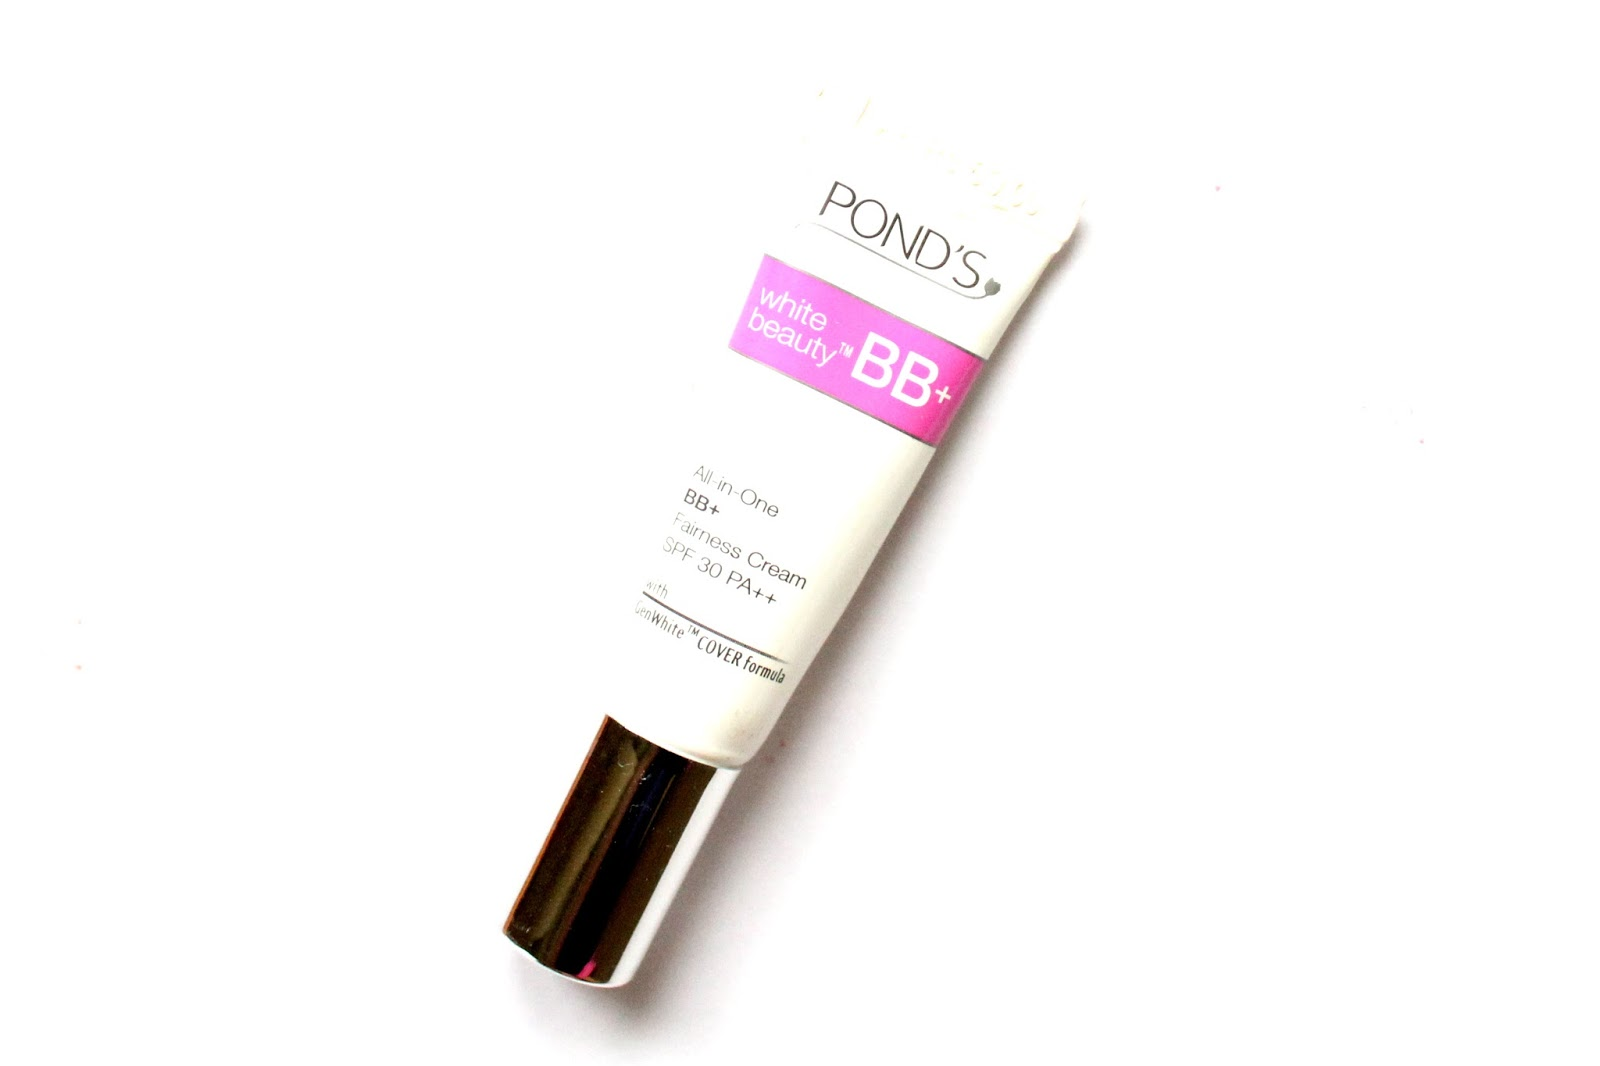 Ponds White Beauty BB+ Fairness Cream review, photos, buy online india